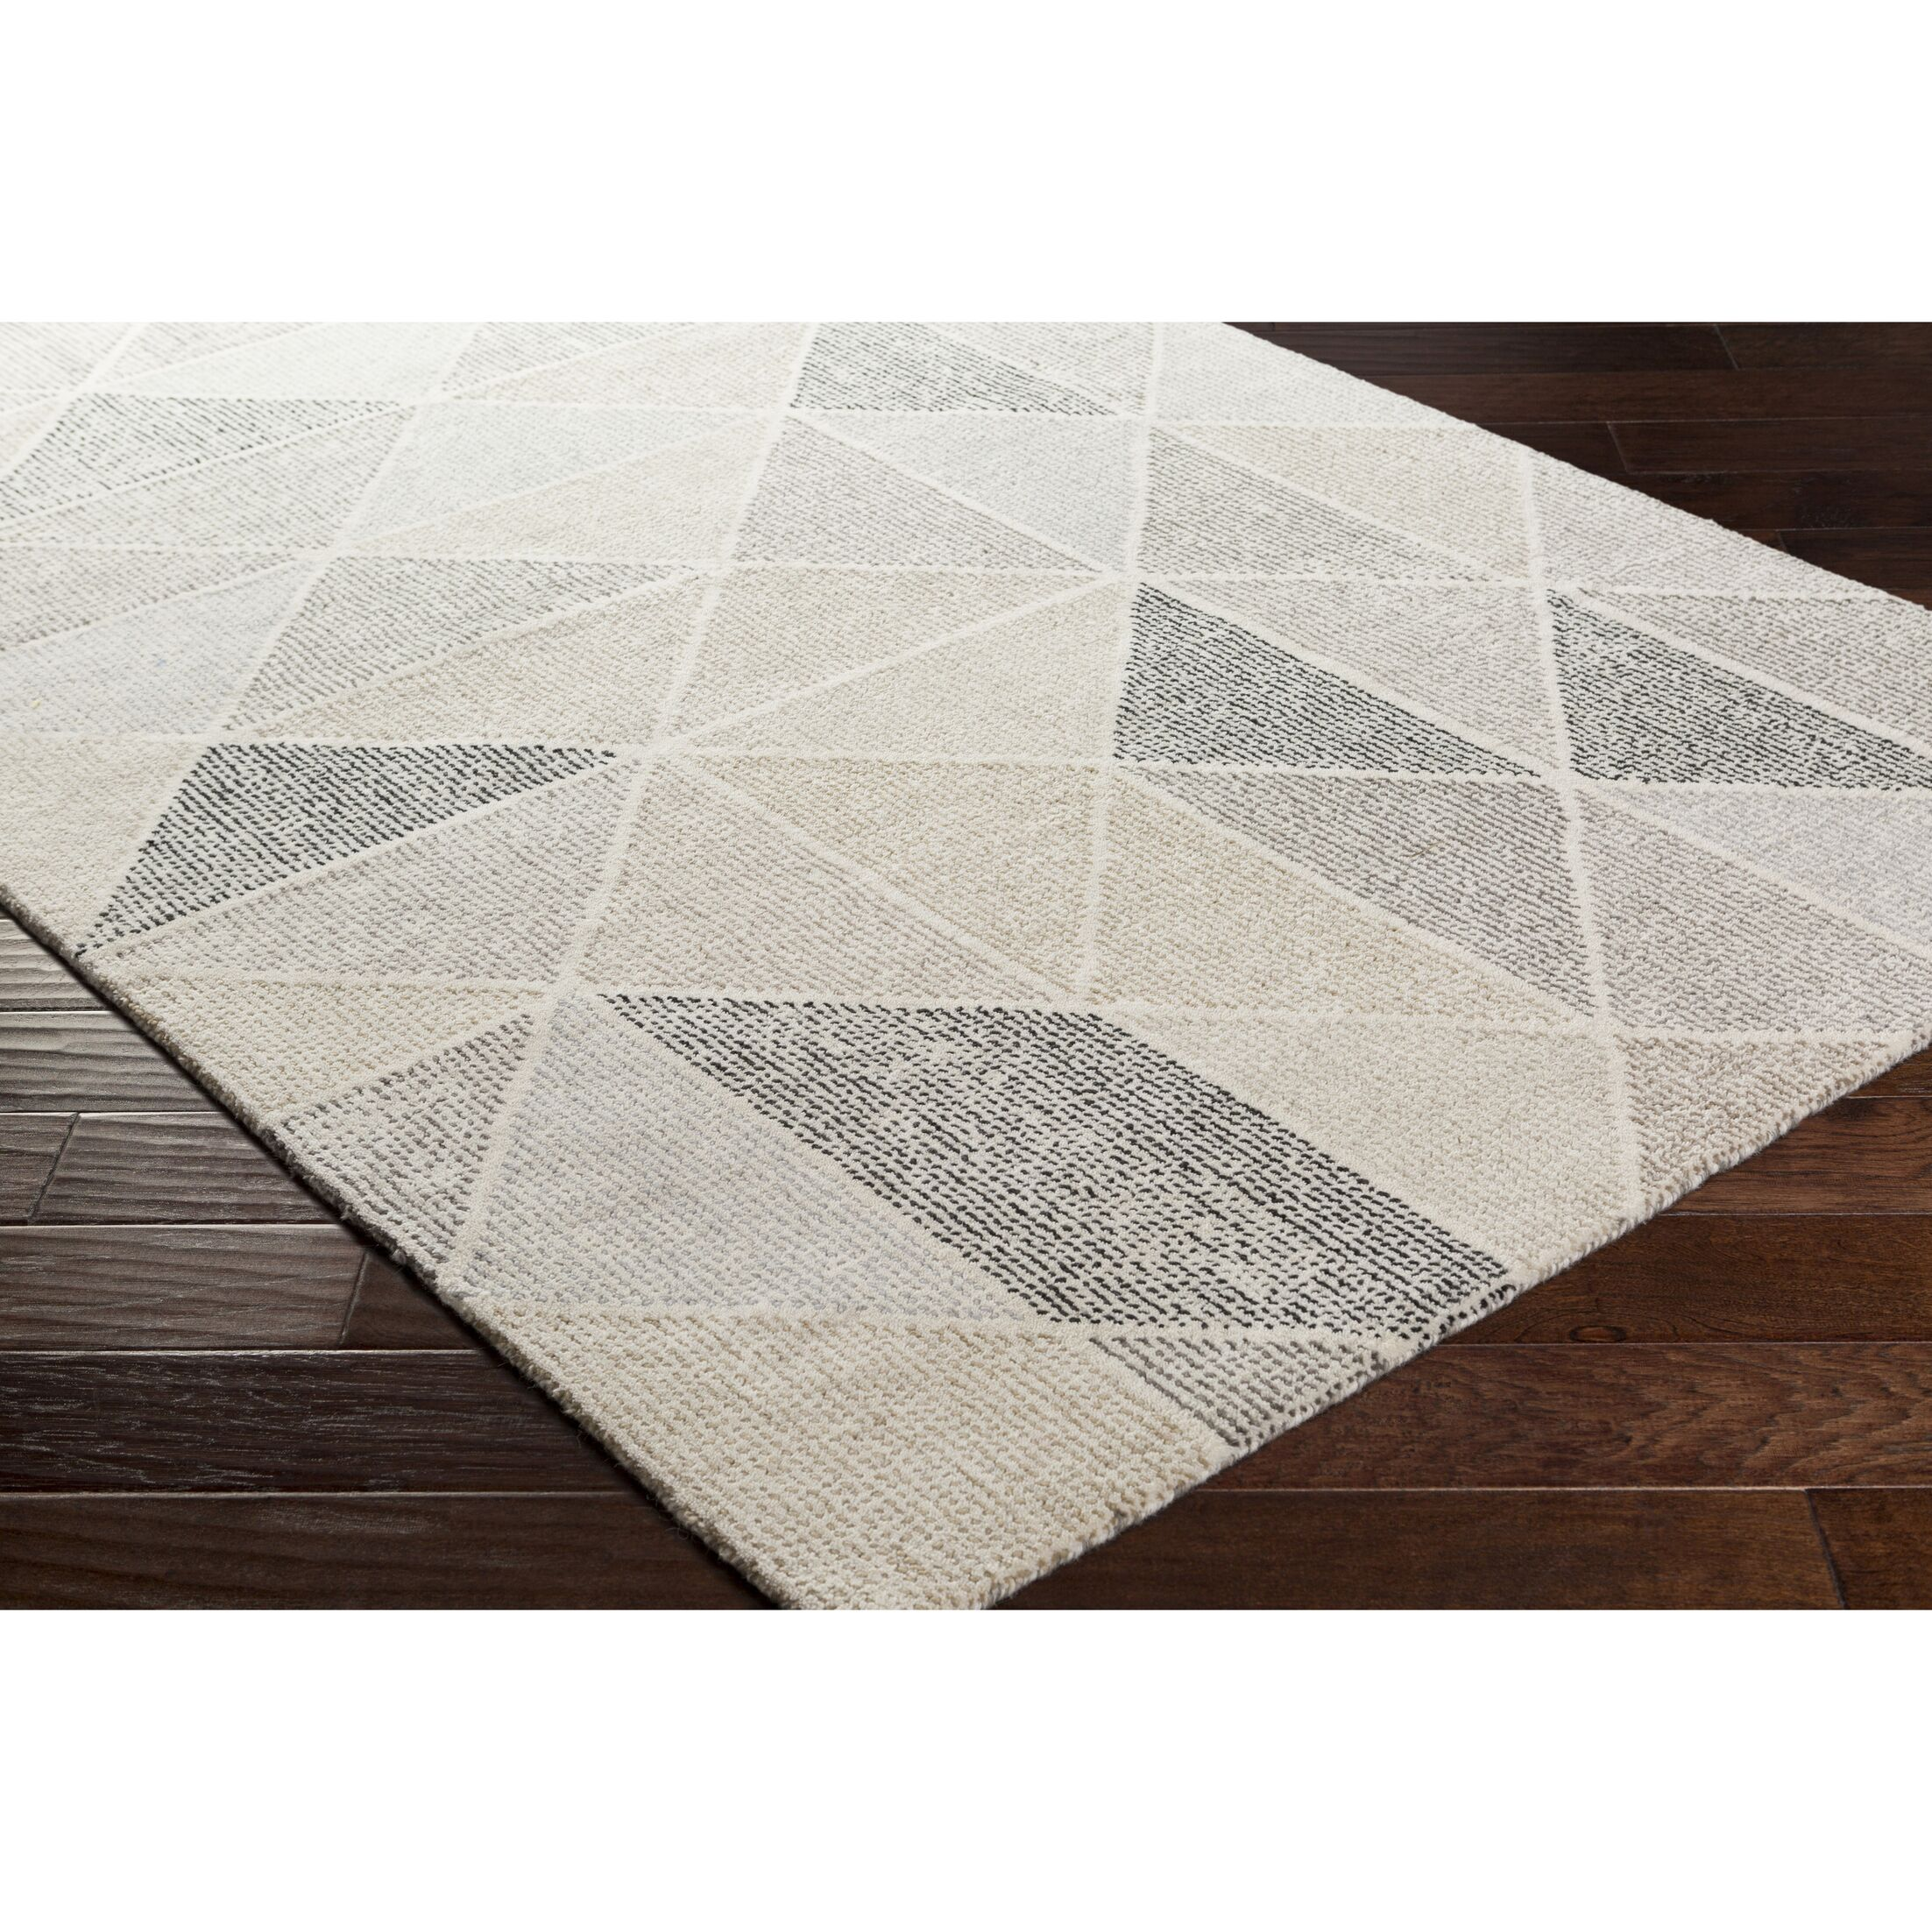 Madero Hand-Tufted Charcoal/Ivory Area Rug Rug Size: Rectangle 5' x 7'6